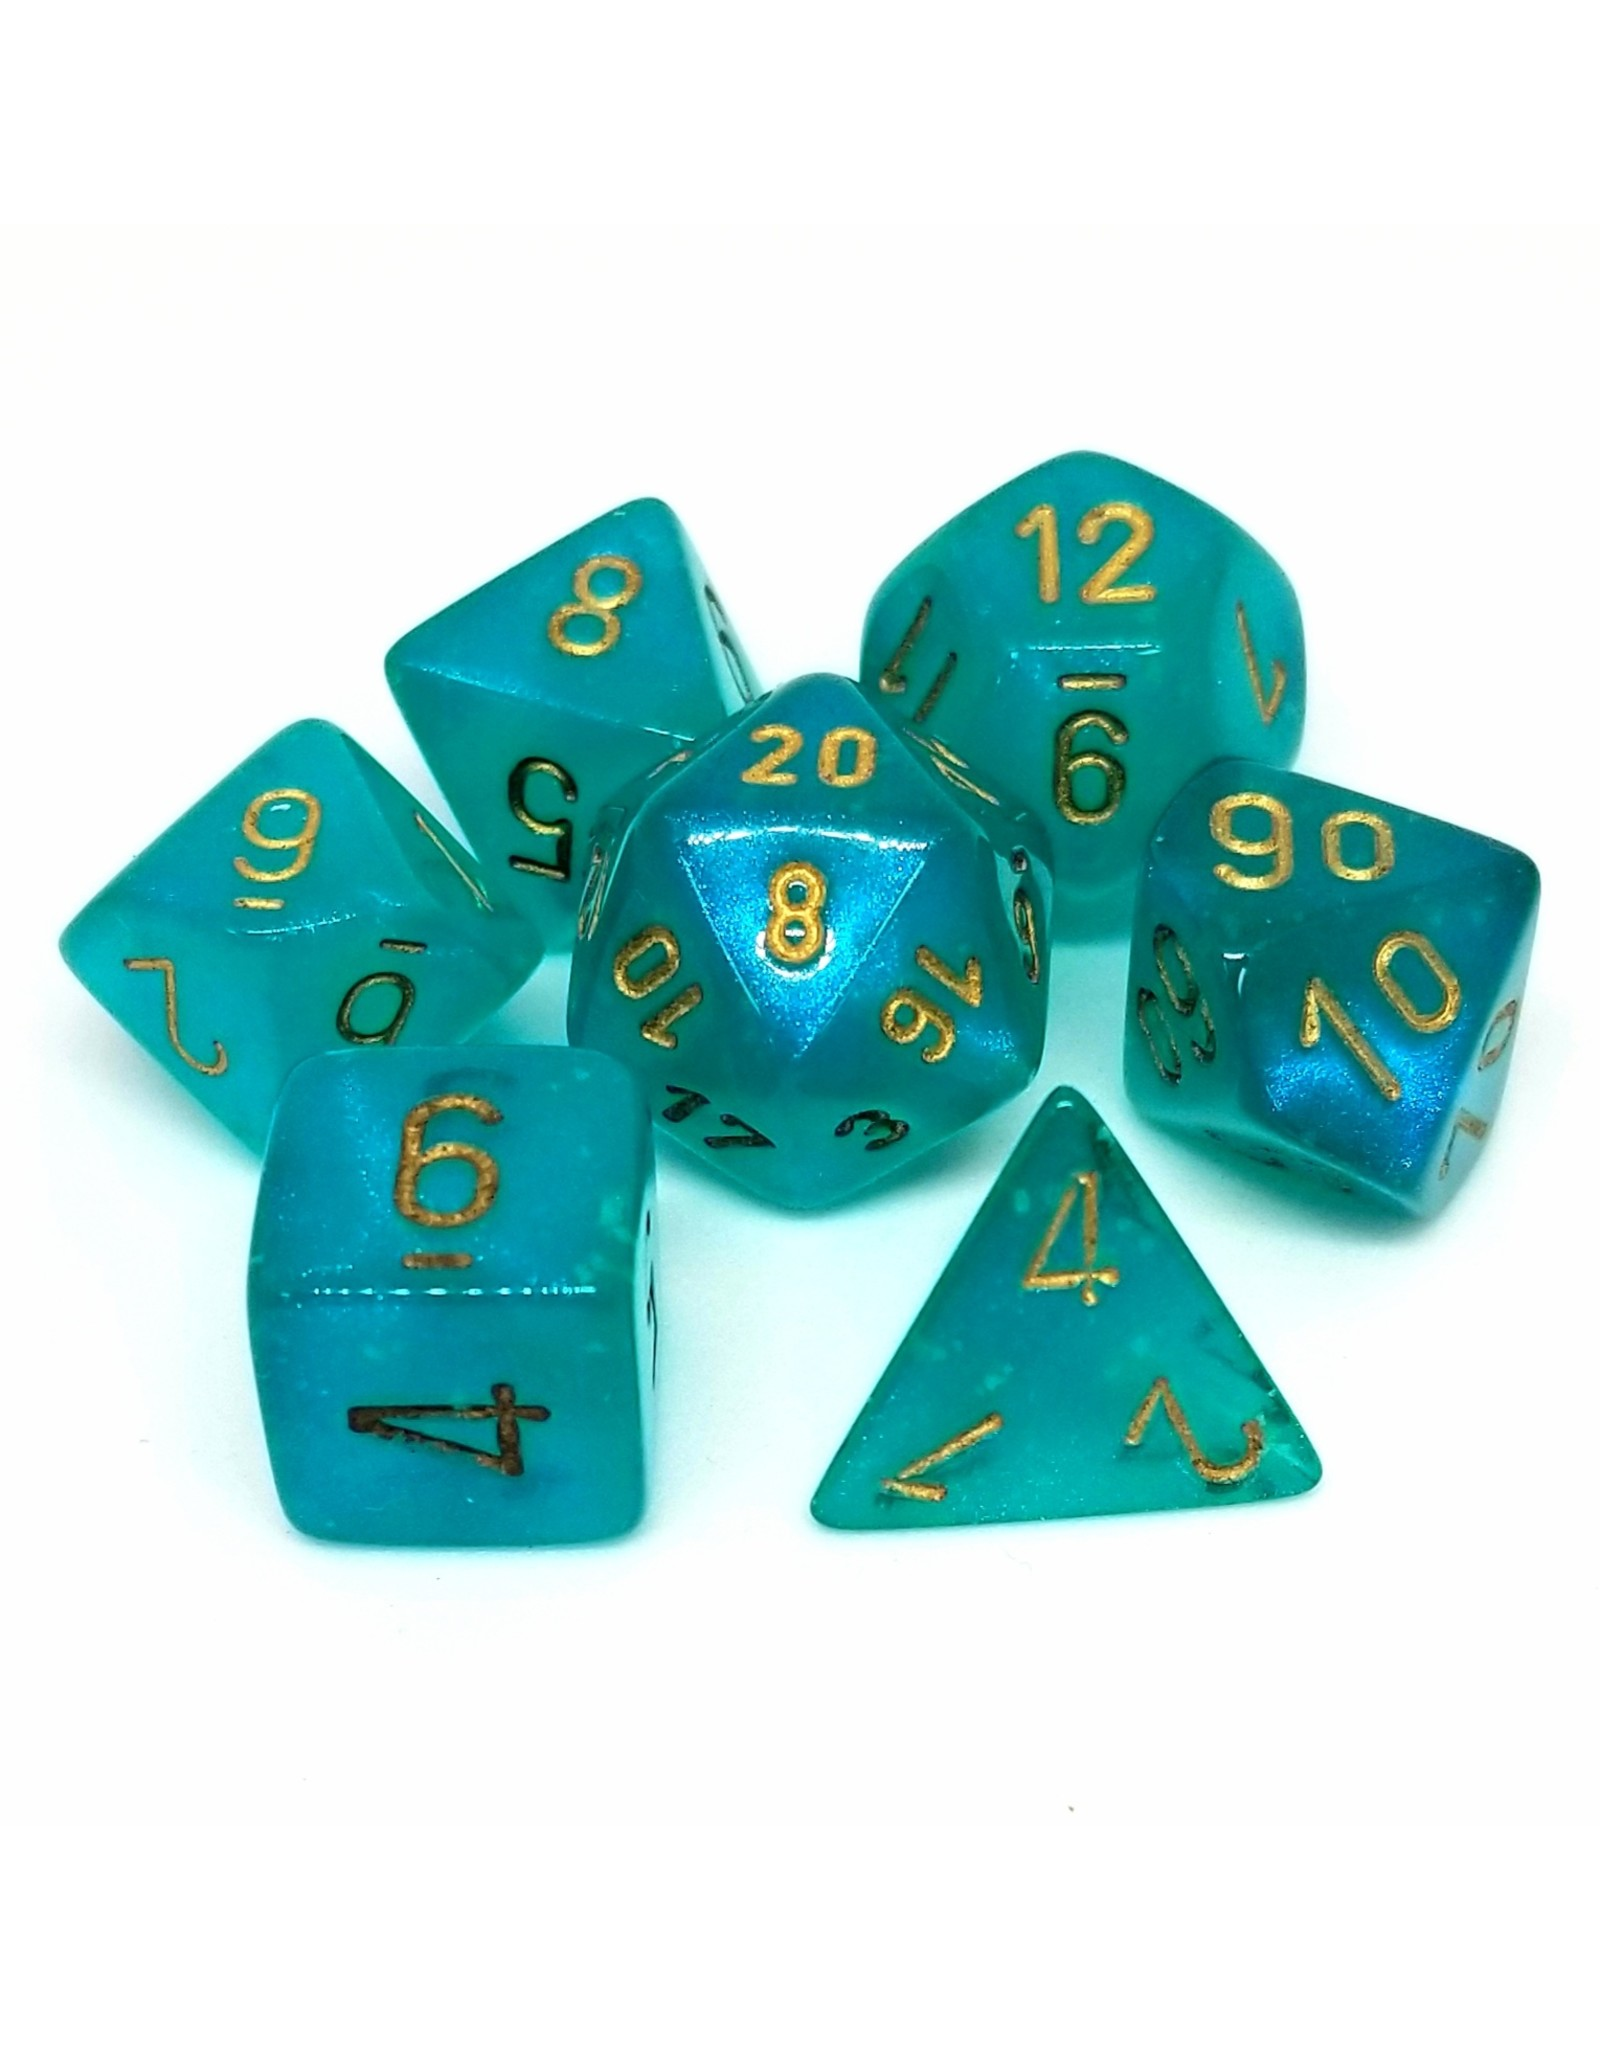 CHESSEX CHX 27585 7ct BOREALIS POLYHEDRAL TEAL/GOLD LUMINARY